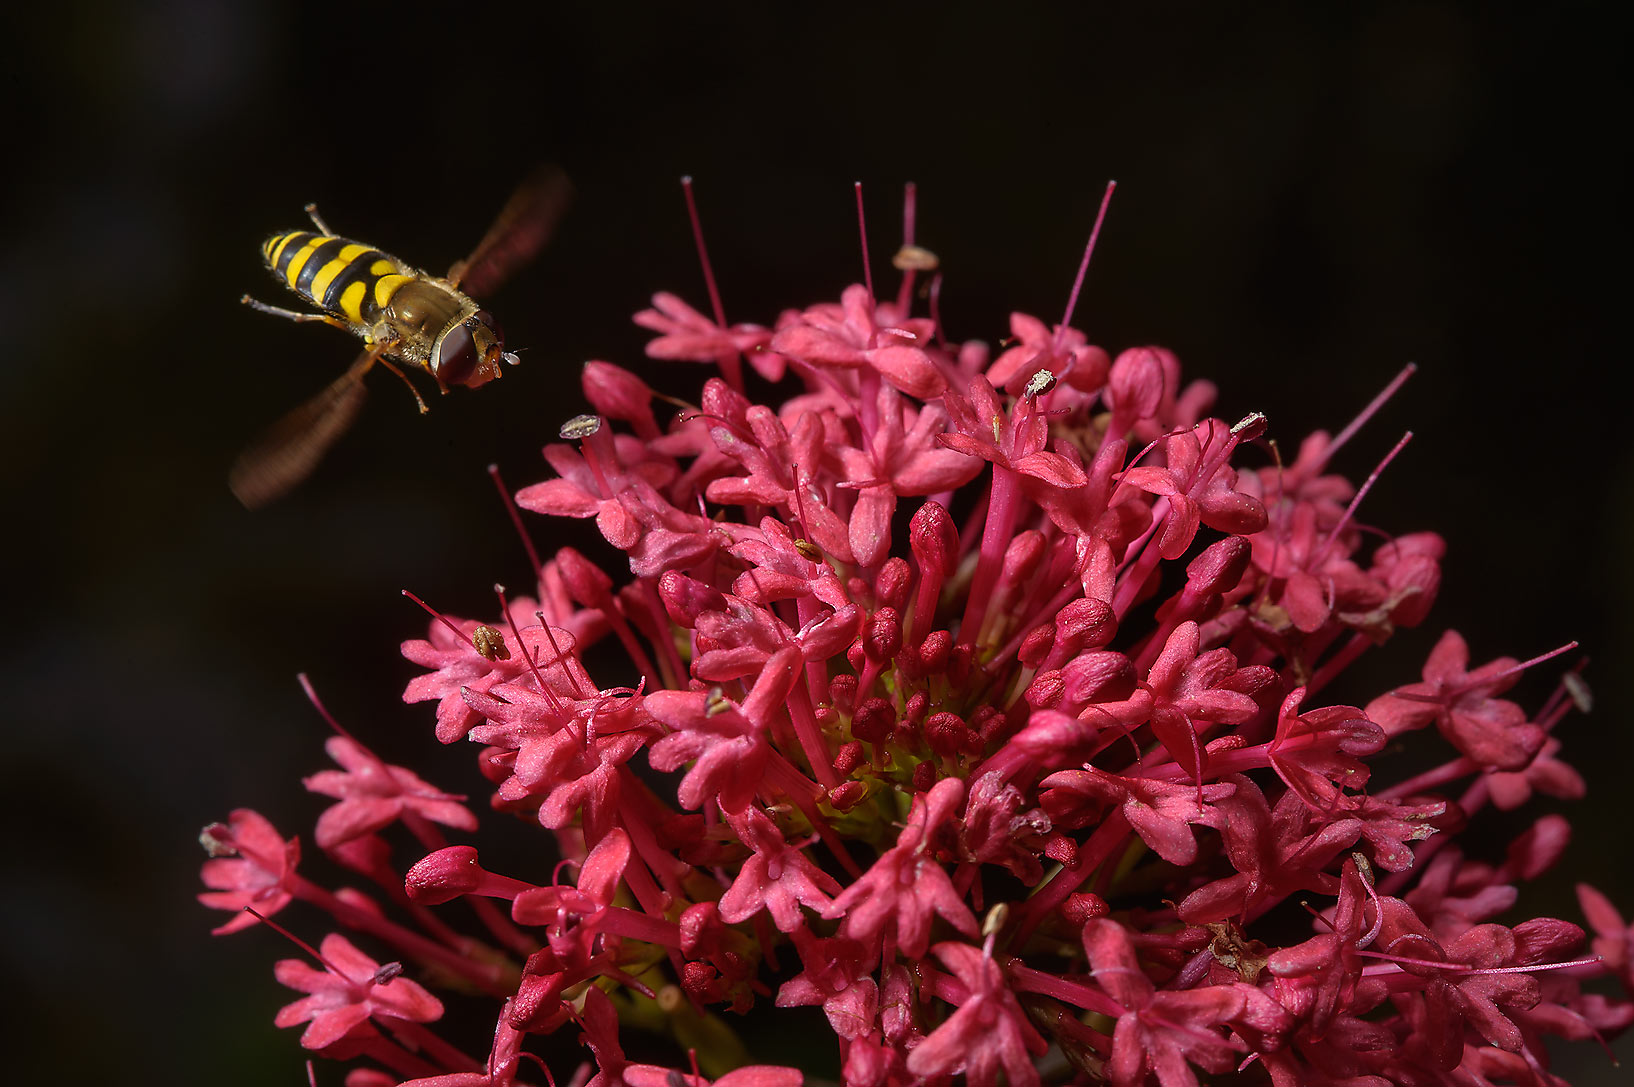 Hoverfly approaching red flowers in Botanic...Institute. St.Petersburg, Russia